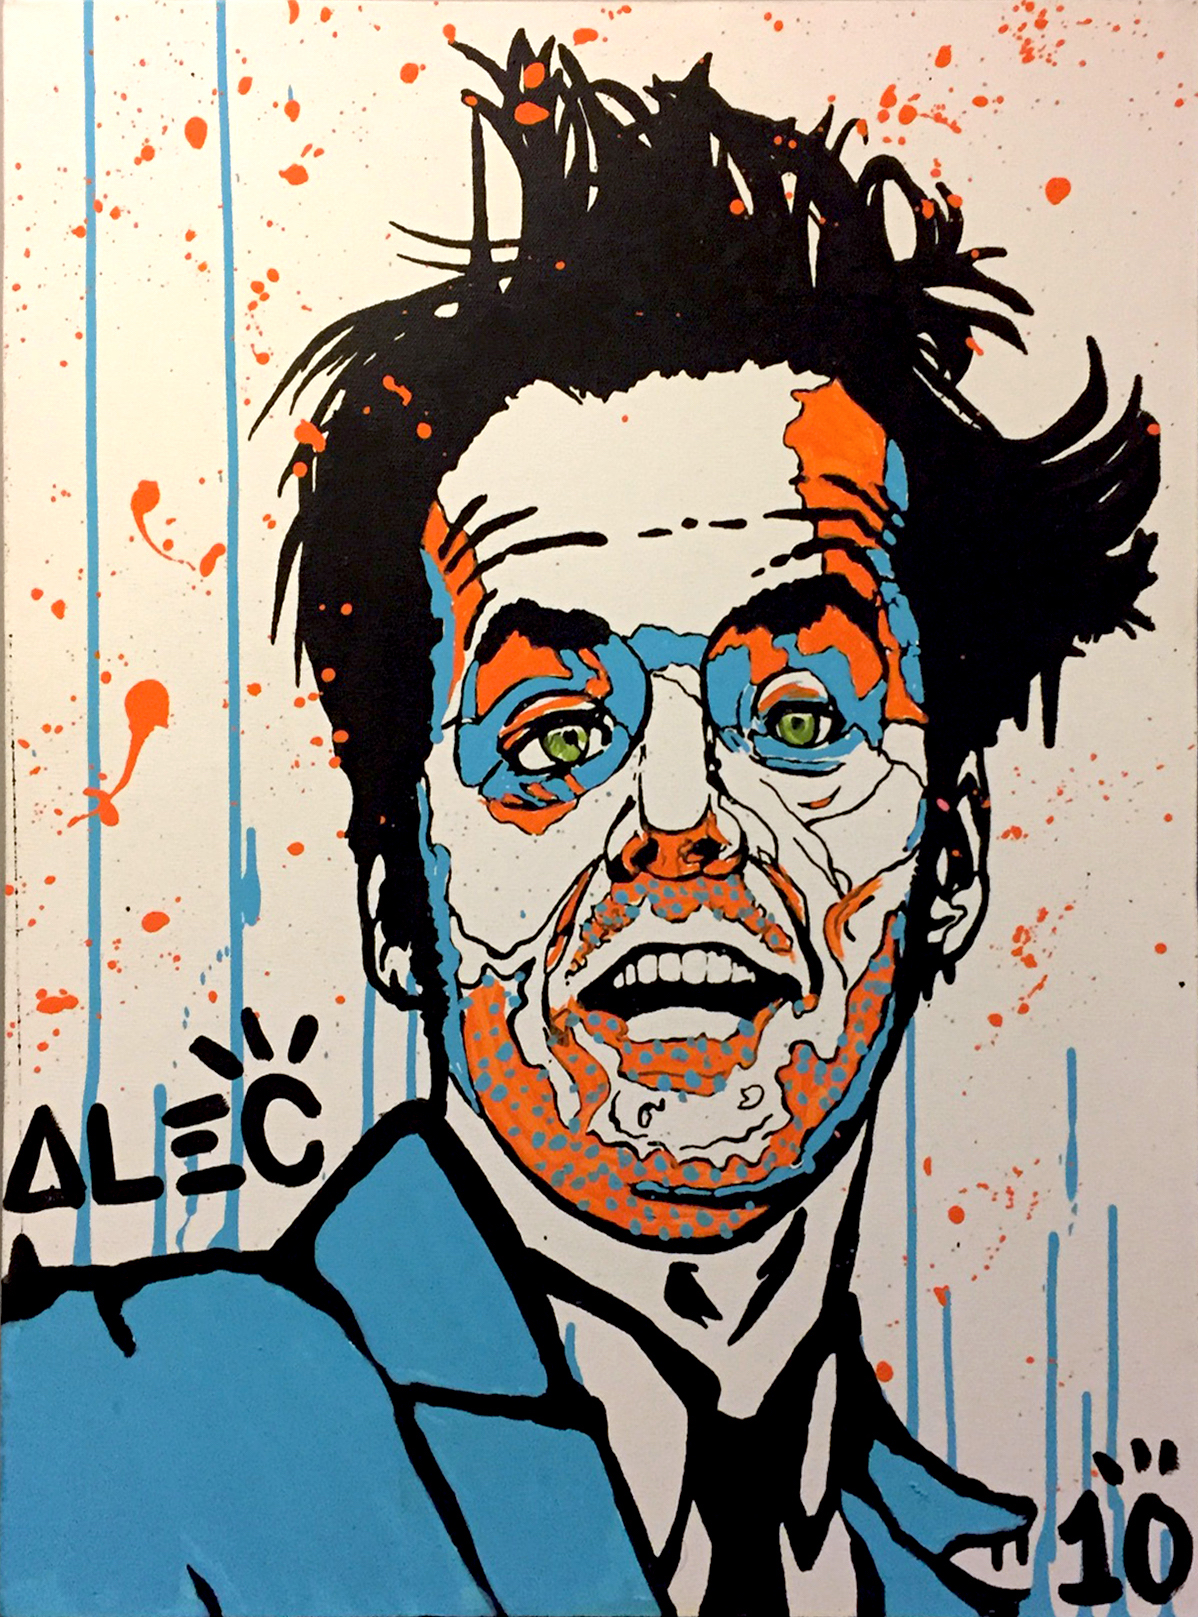 a279c709151 Alec Monopoly Paintings and Sculptures for Sale